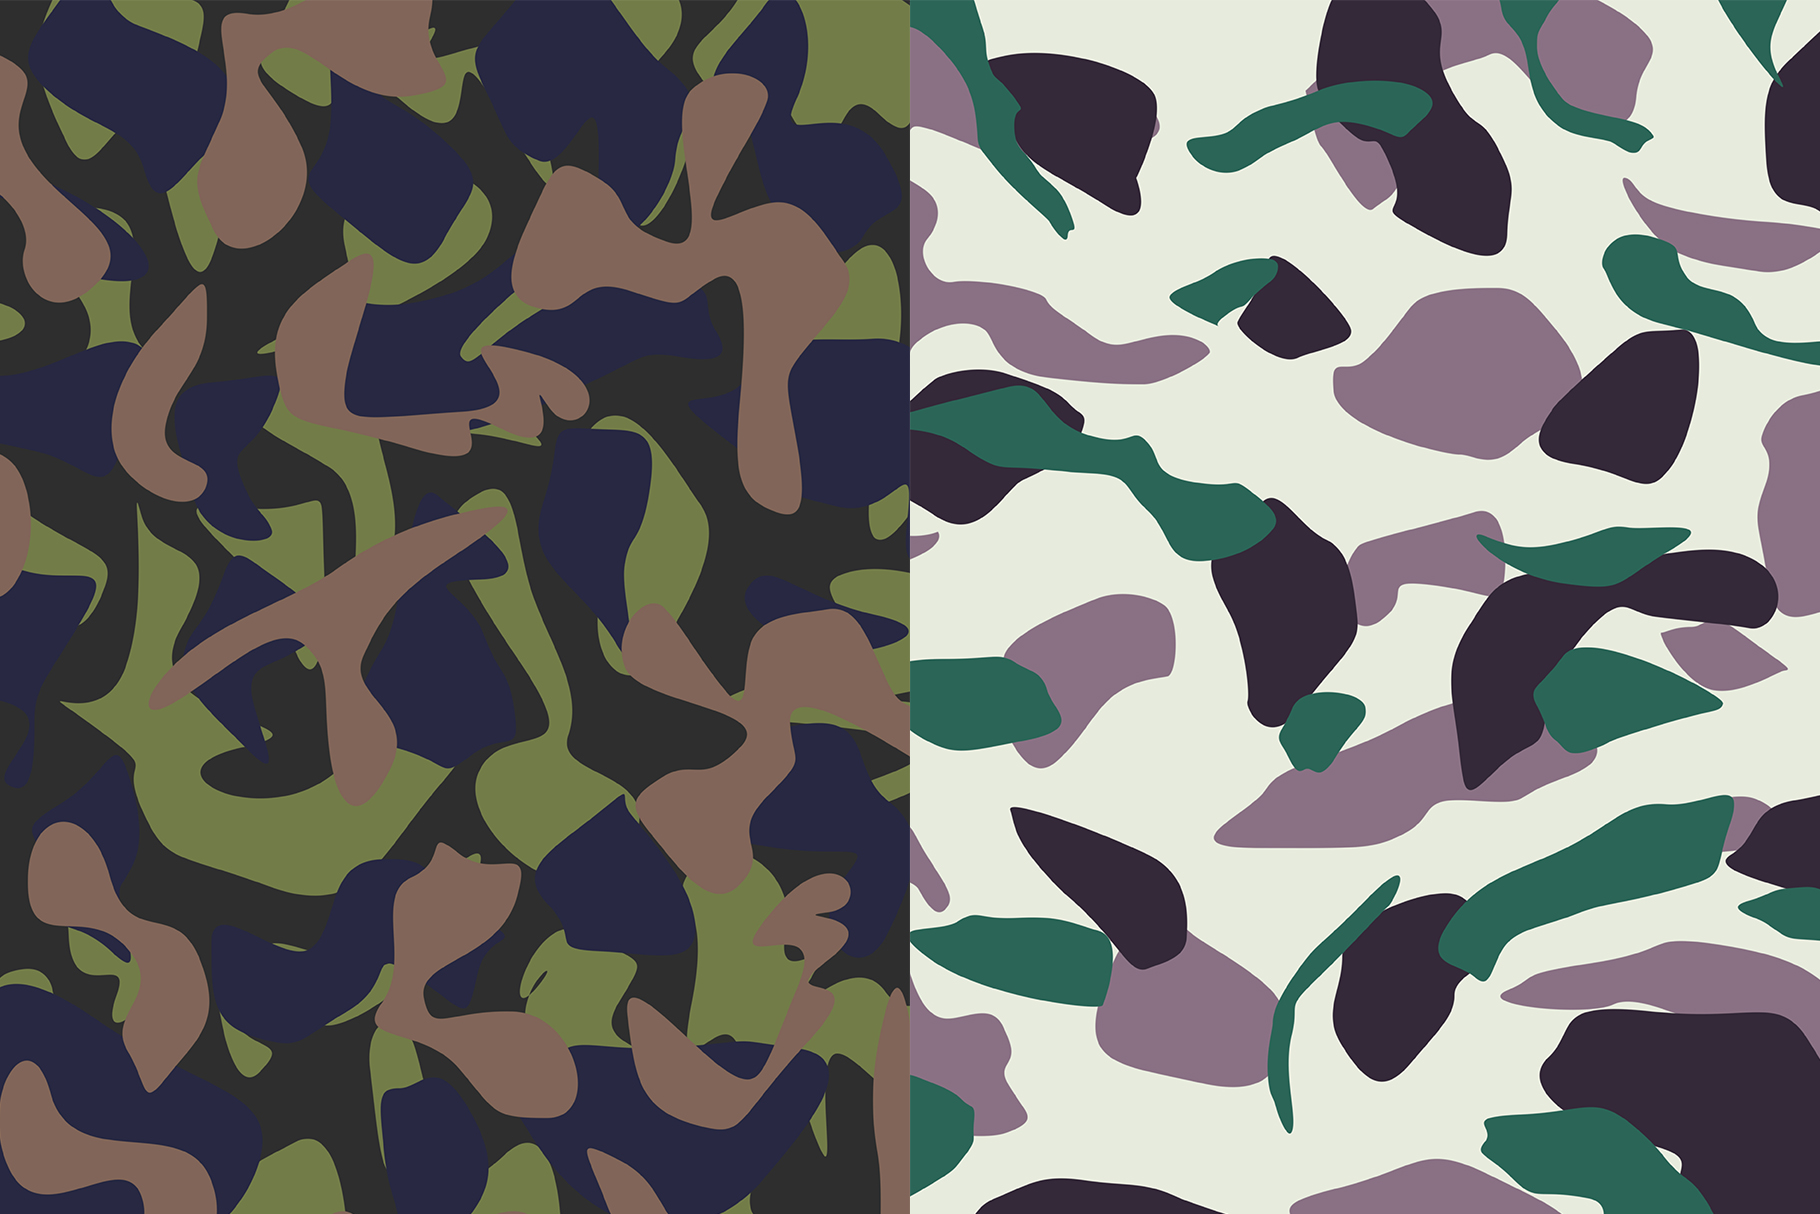 10 Army Camo Patterns Vol.2 example image 5